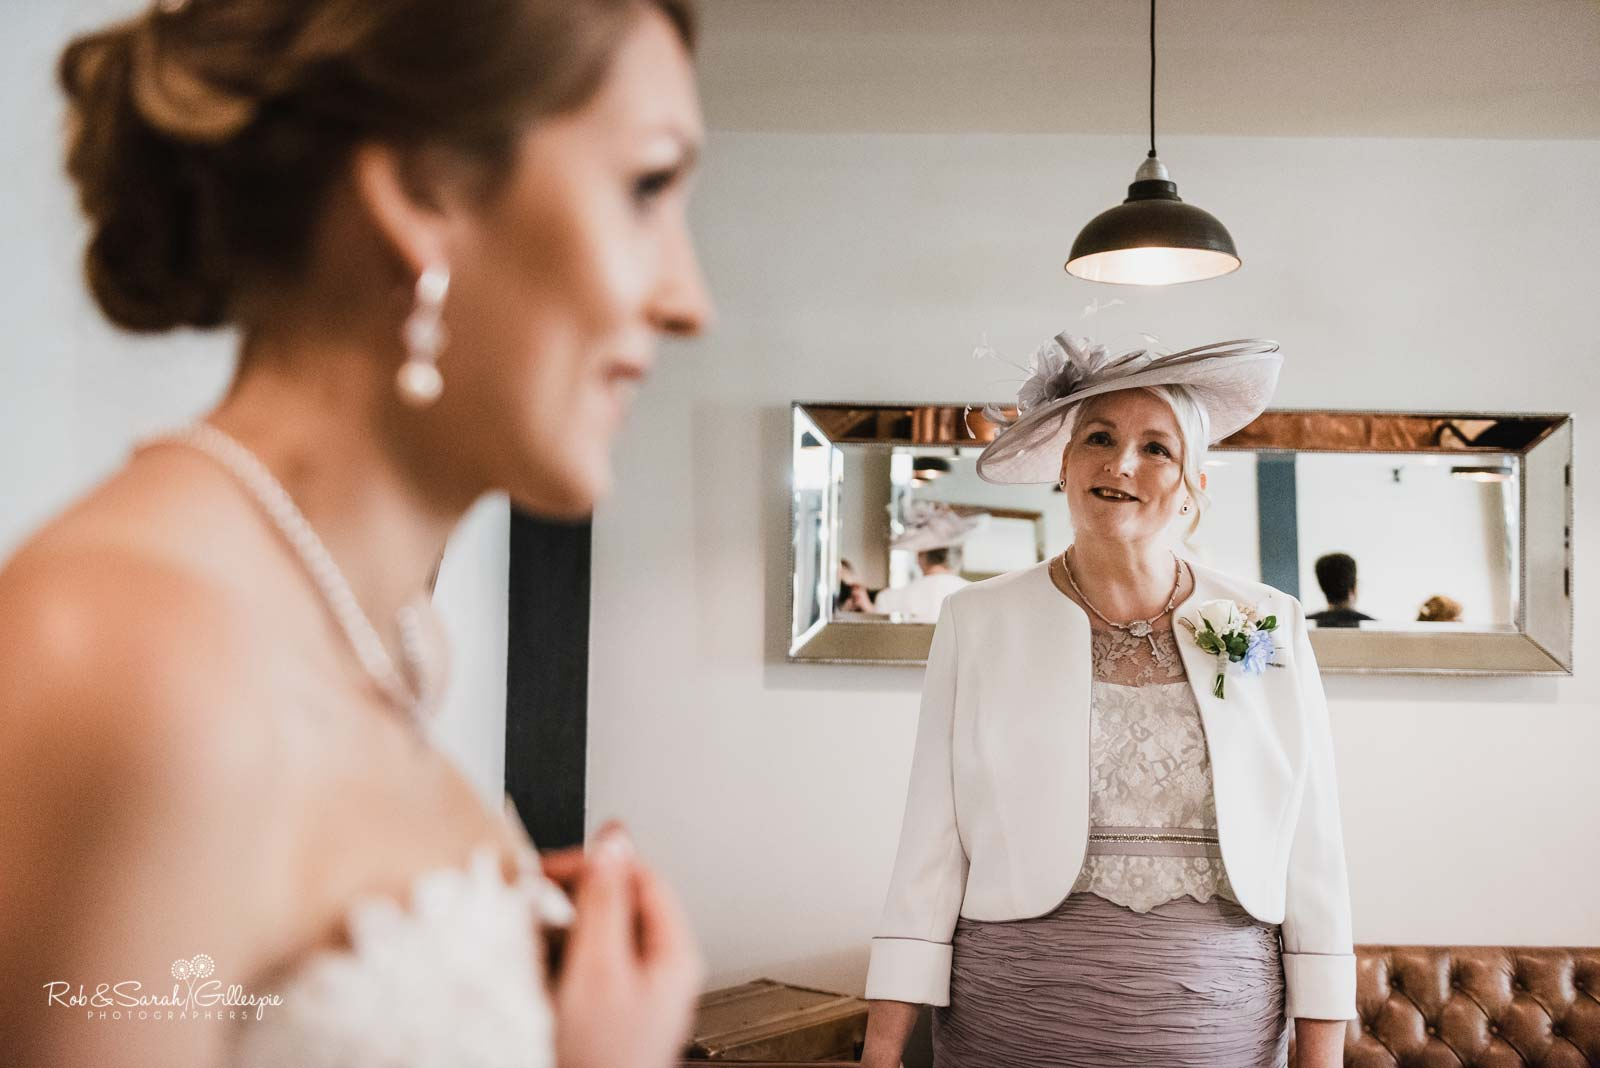 Mom smiles as daughter prepares for wedding at The Mill Barns